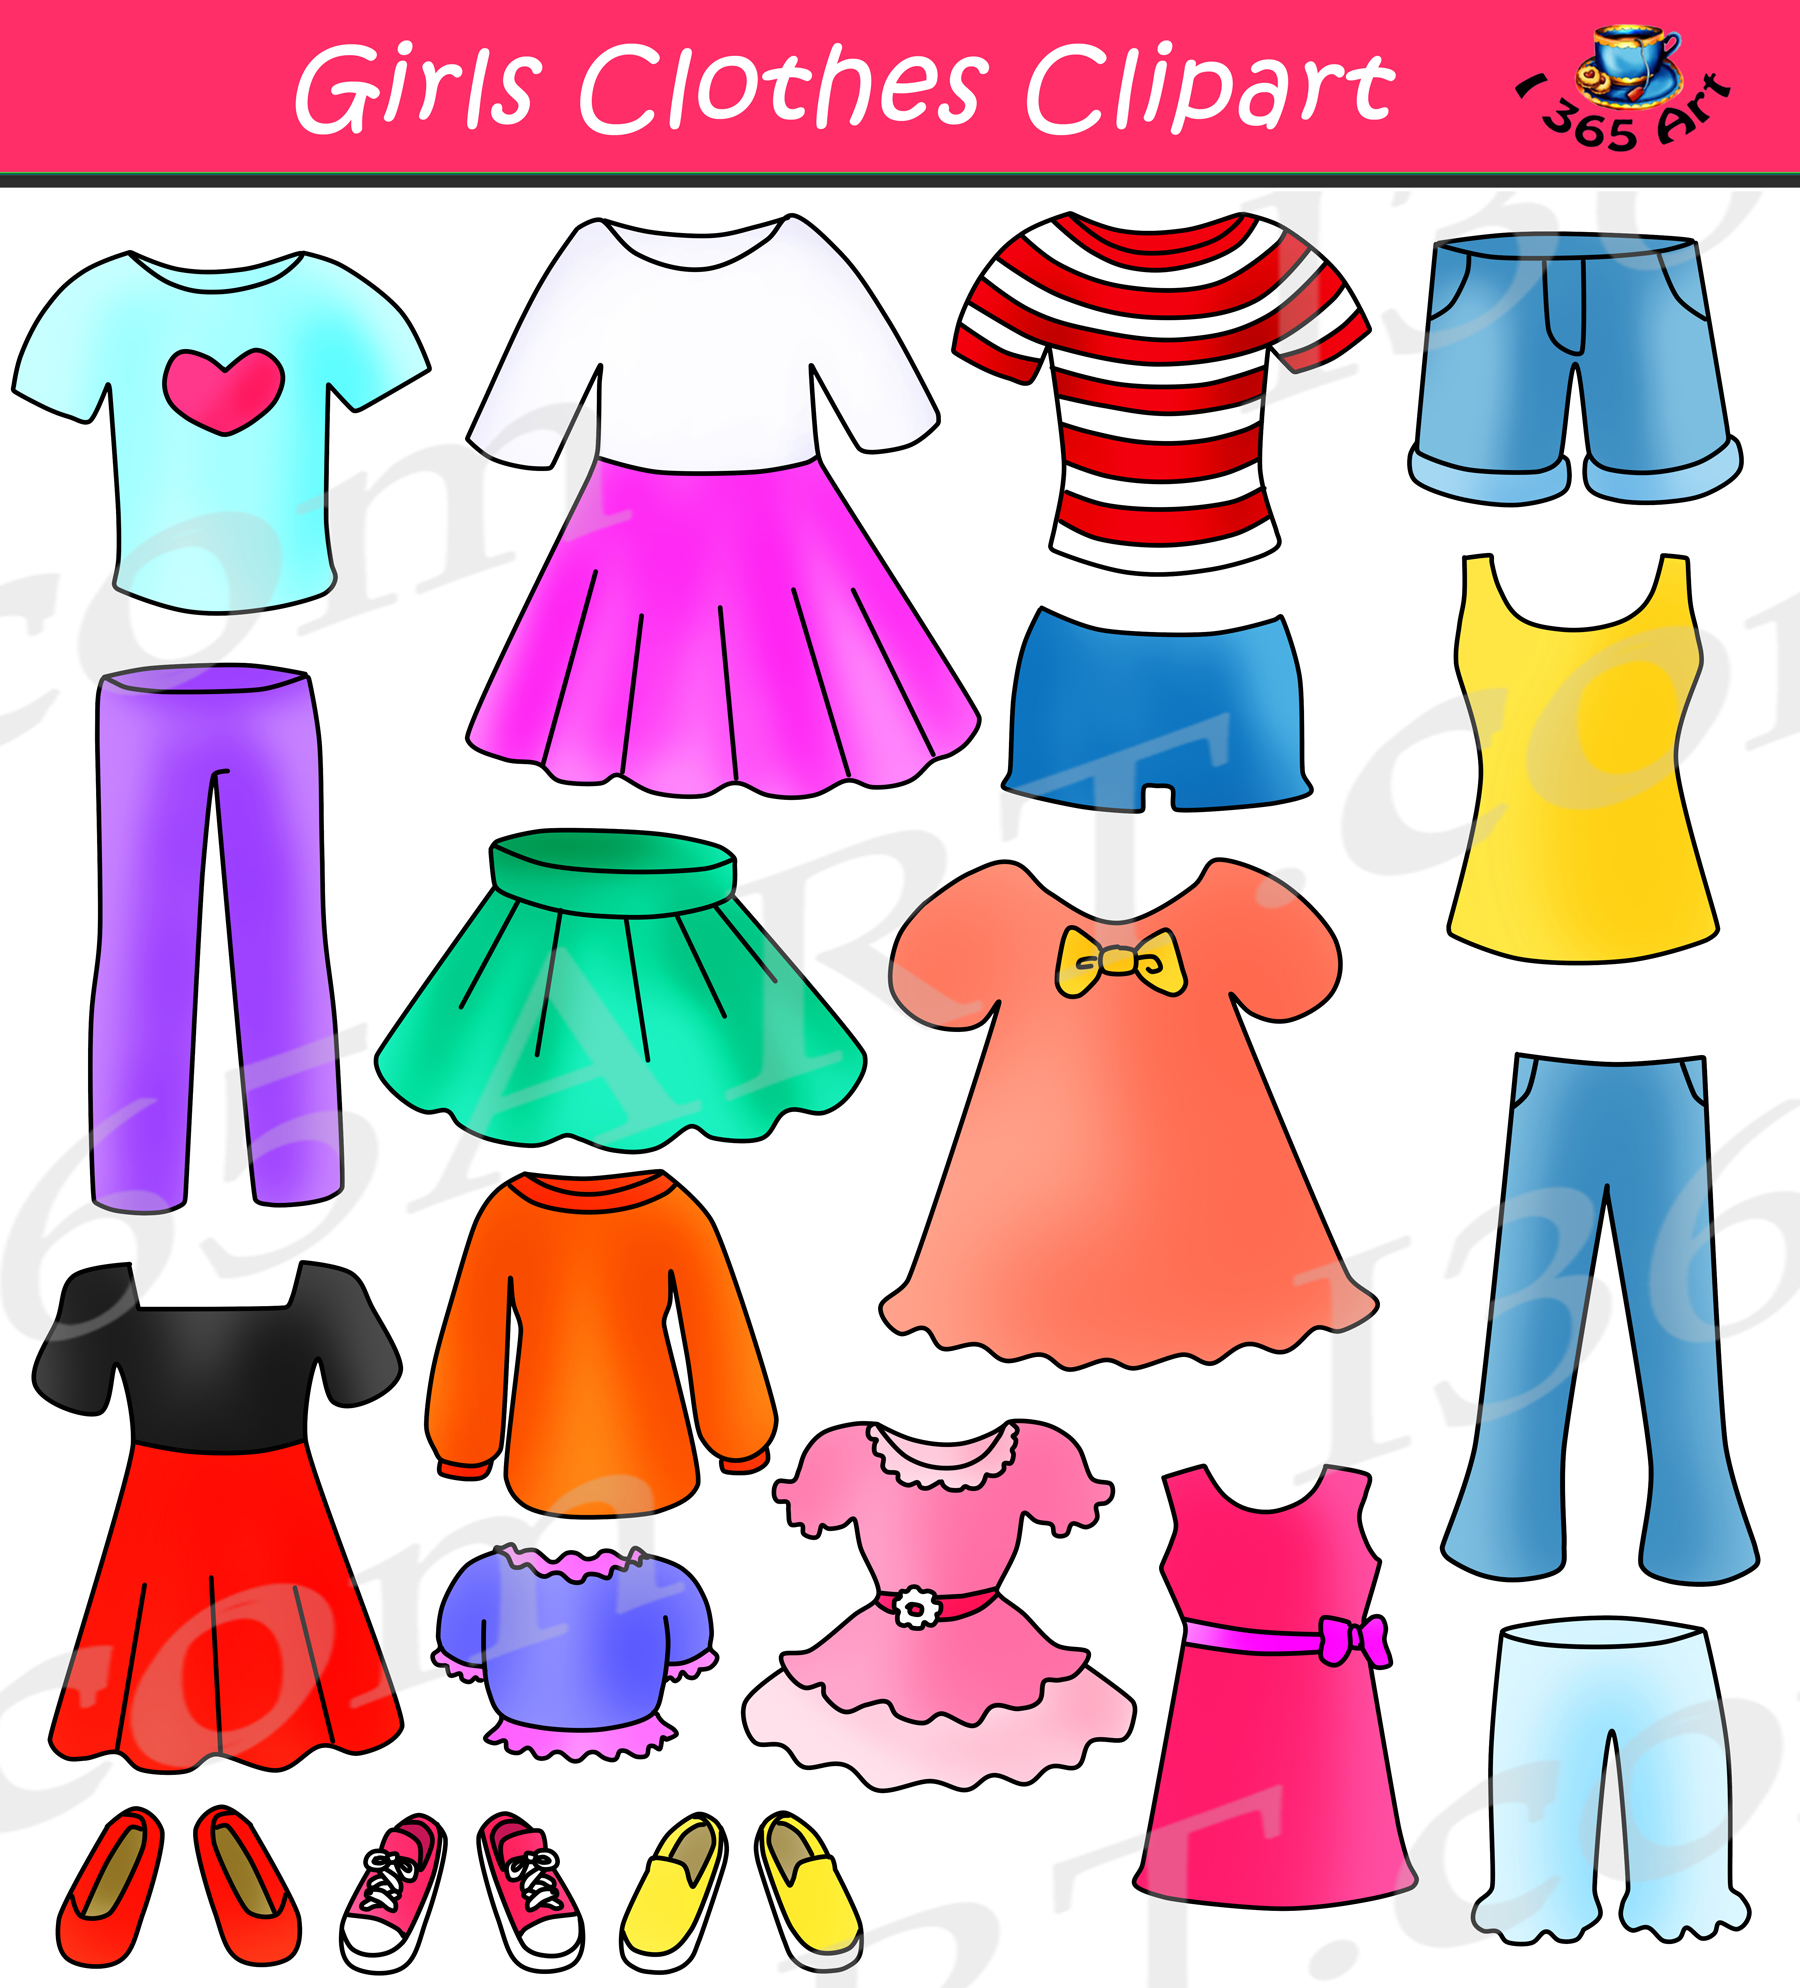 Girls Clothes Clipart Set Dress Up Clip Art